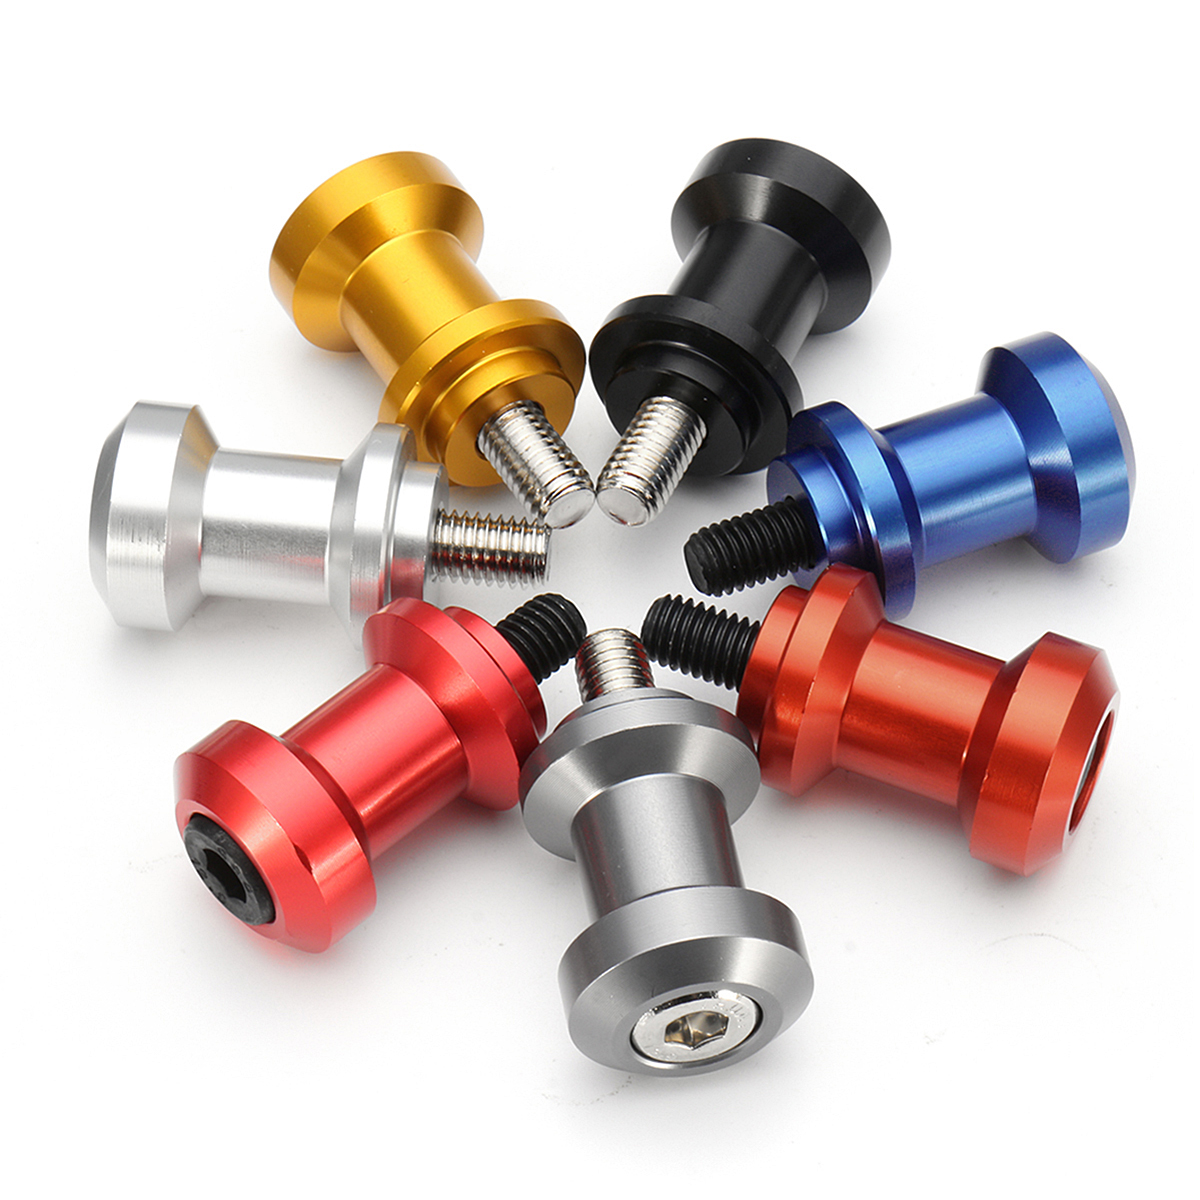 8mm Aluminum Swing Arm Spools Sliders Bolts For Suzuki/Honda/Kawasaki/Triumph